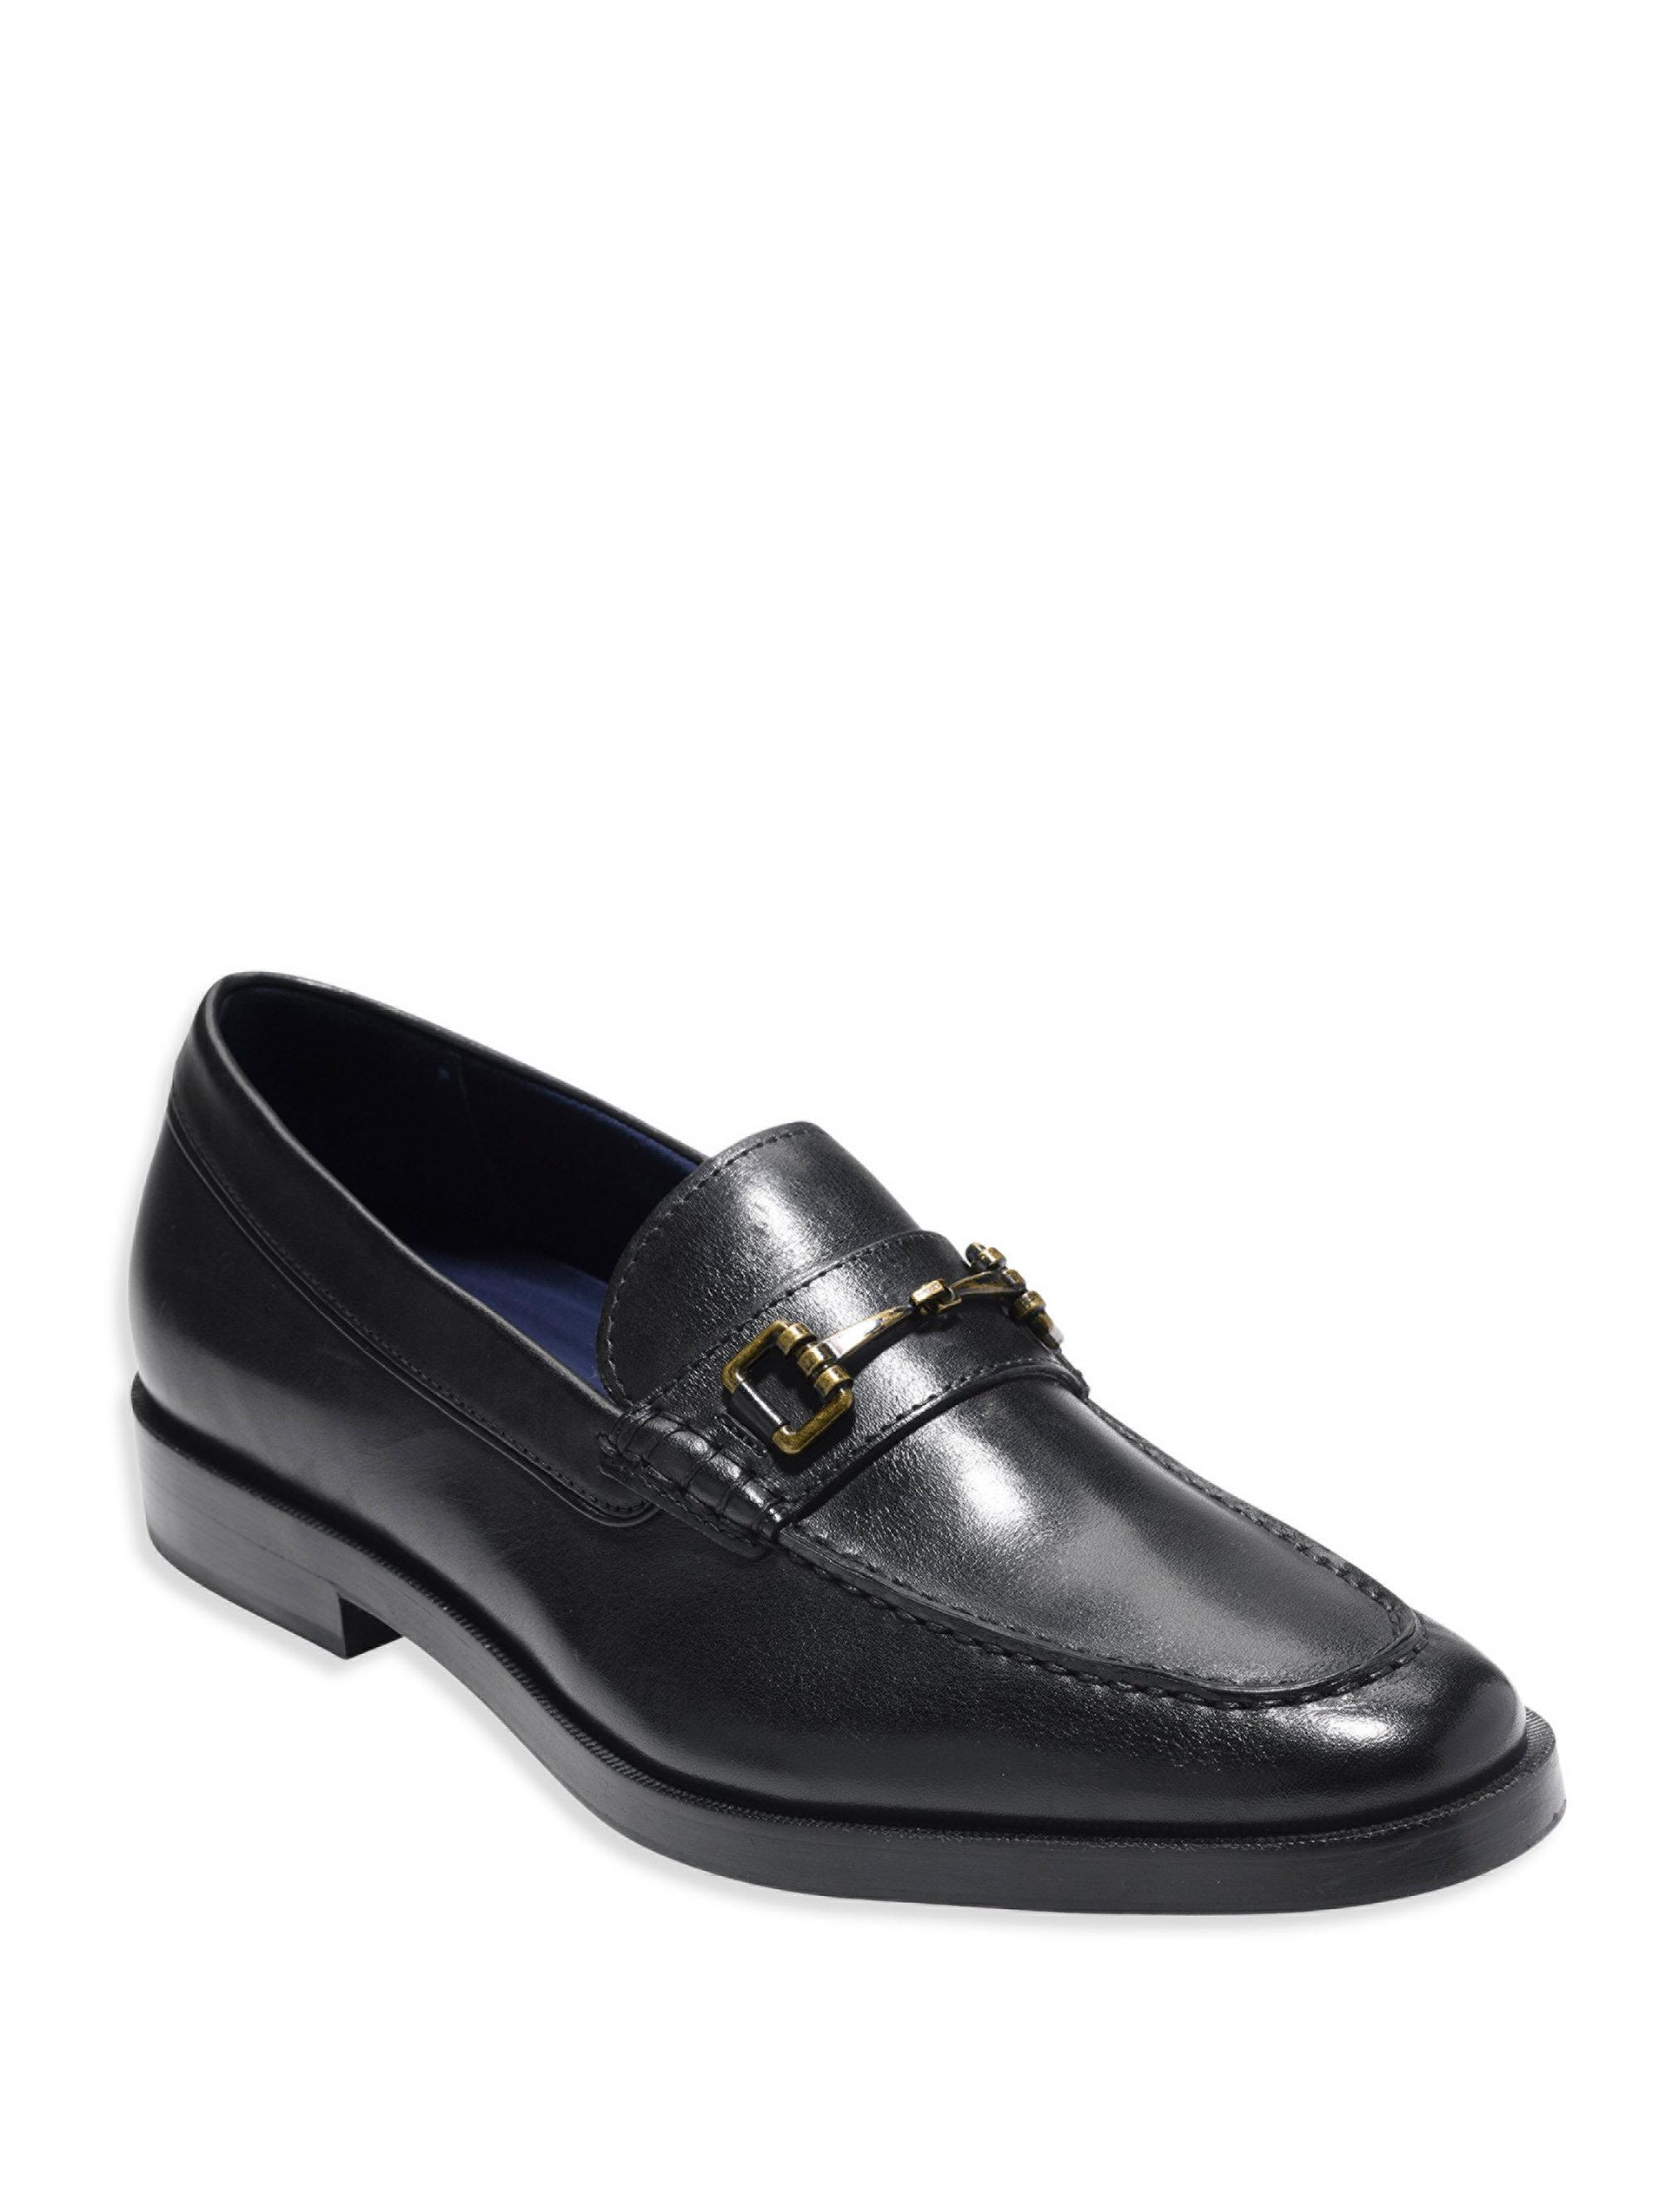 Cole Haan Dress Revolution Hamilton Grand Leather Penny Loafers c6H9NOGM9P